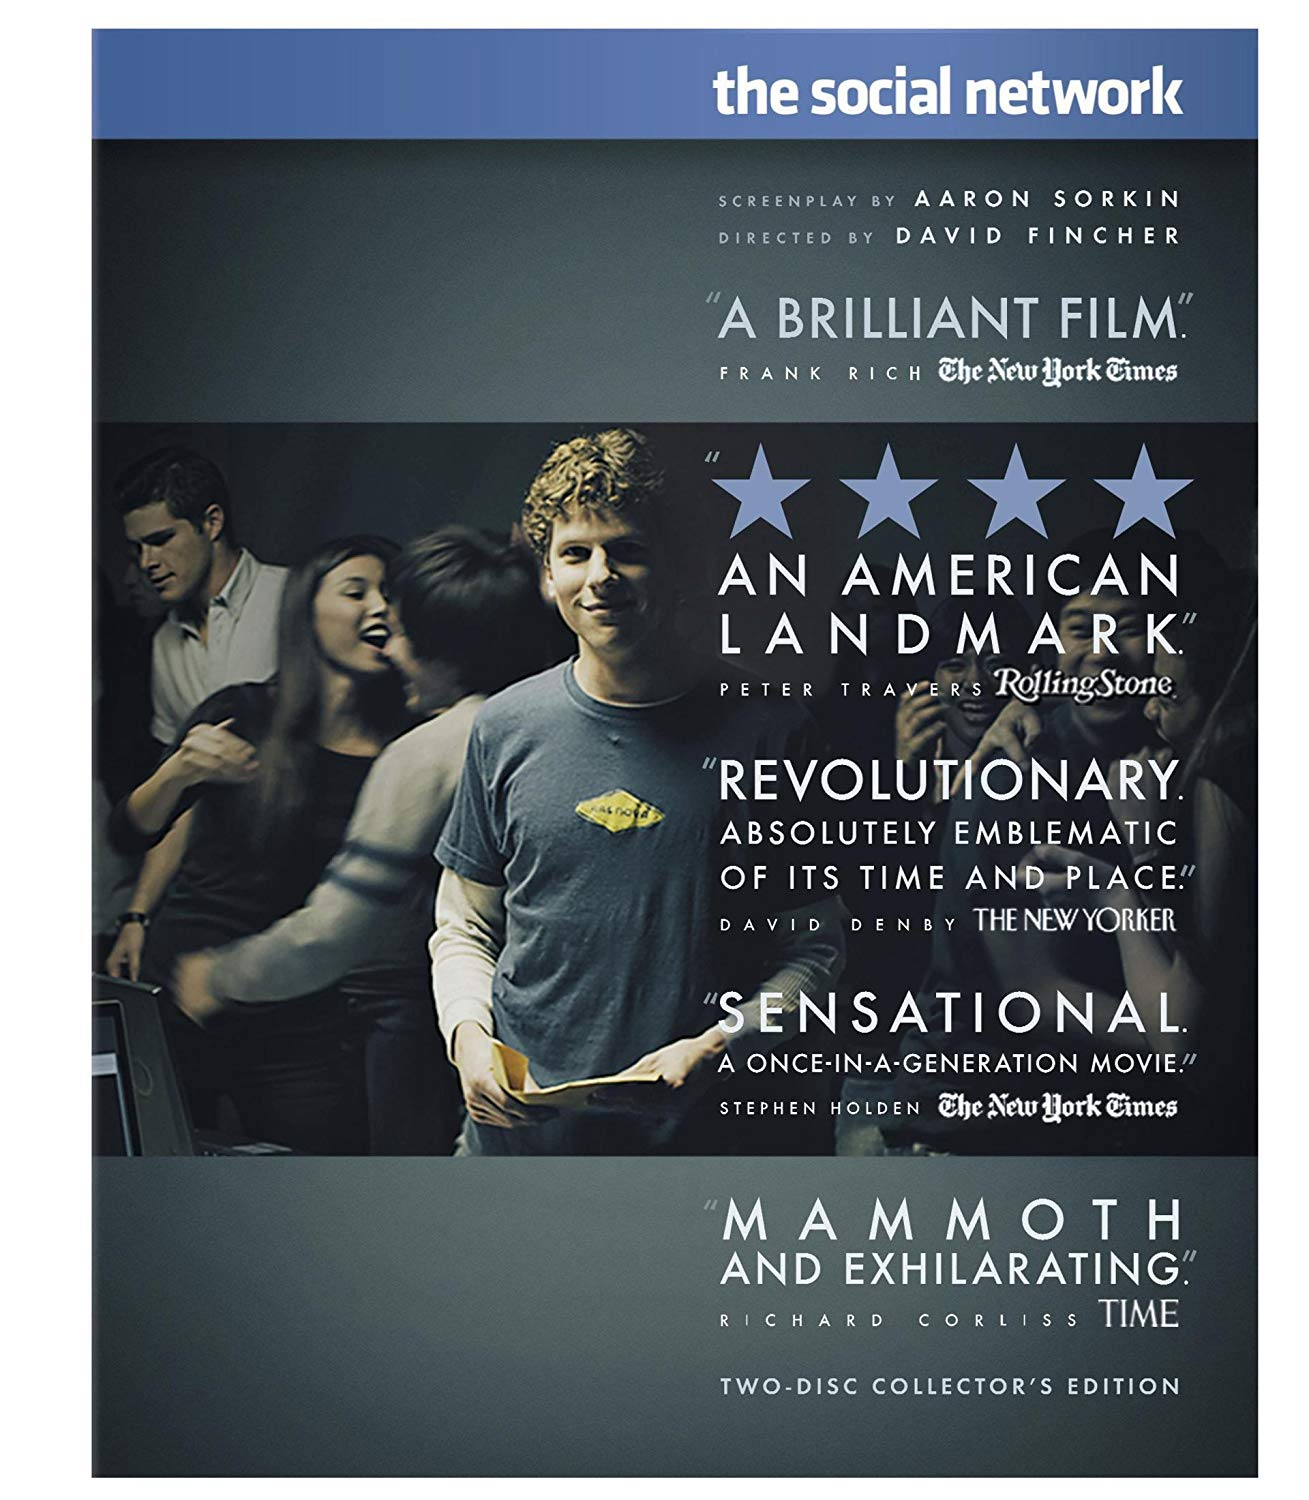 The Social Network by Sony Pictures